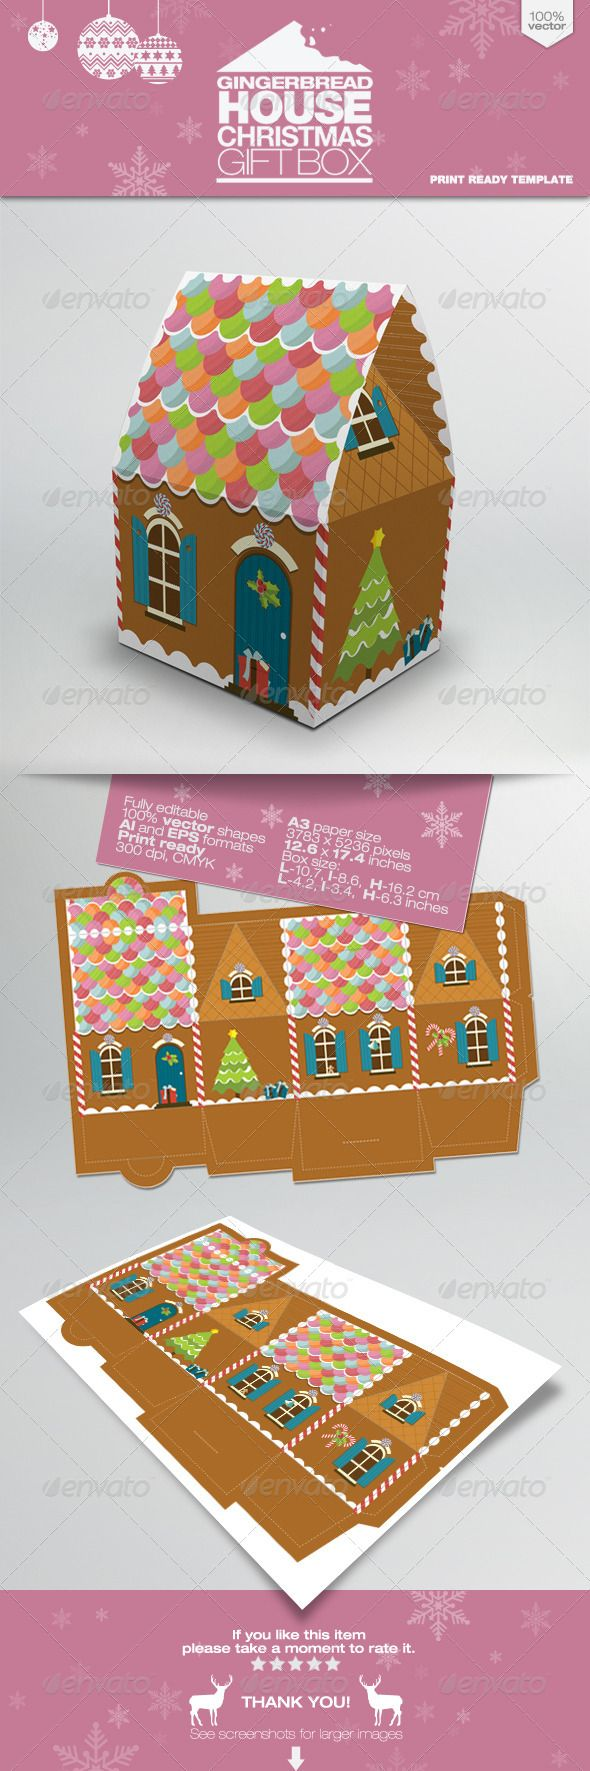 Gingerbread House Packaging Gift Box | Gift boxes | Pinterest